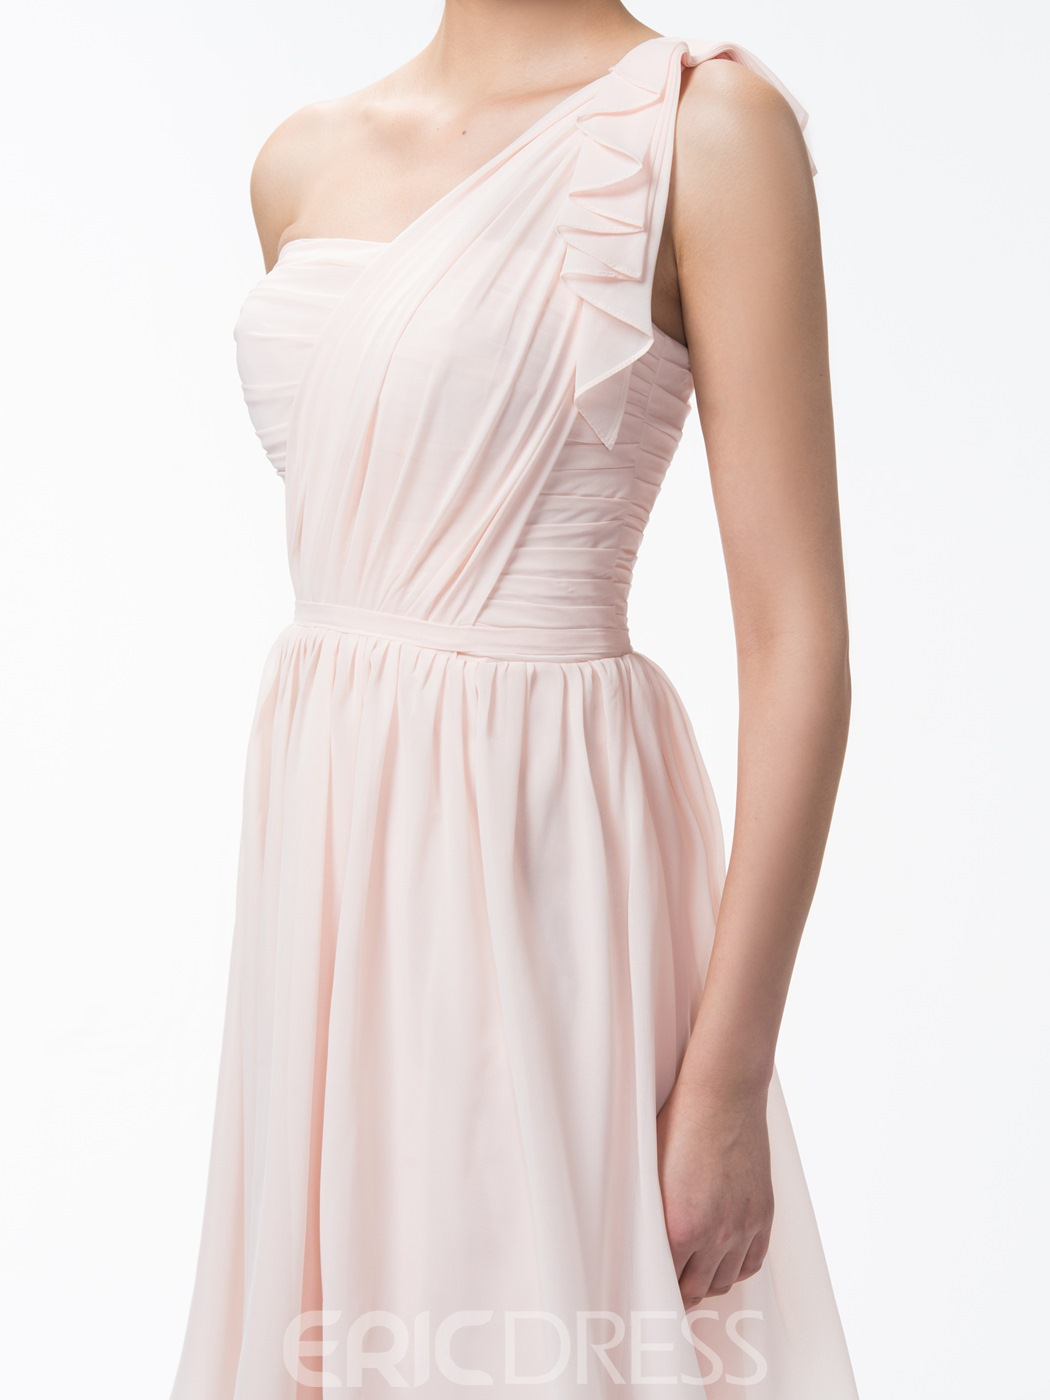 Cute One Shoulder A Line Short/Mini Ruffles Bridesmaid Dress